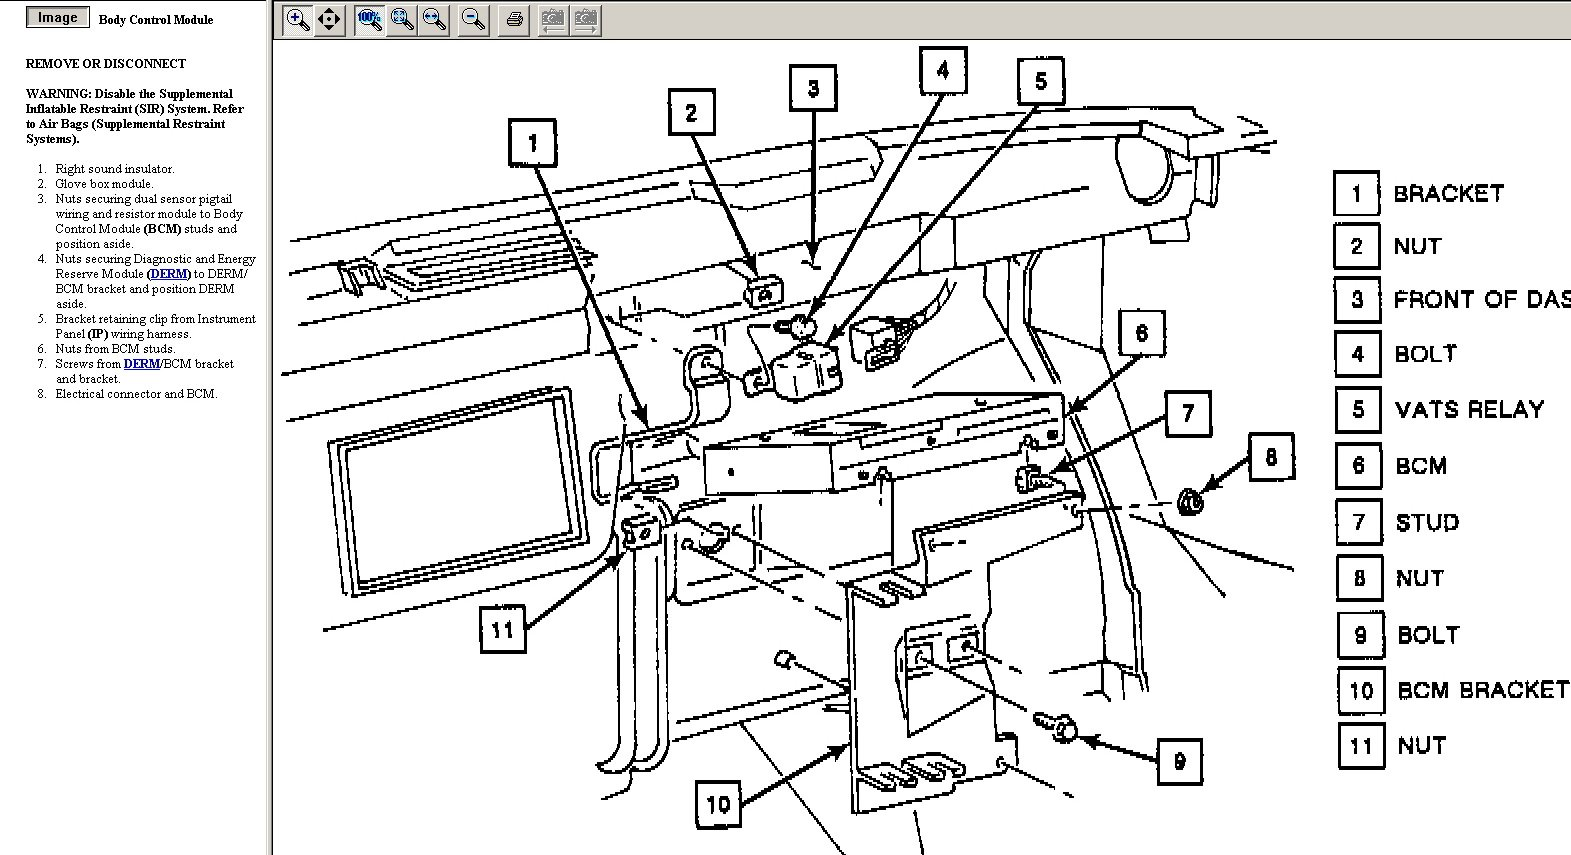 vats wiring diagram 93 cadillac chevy sonic stock air